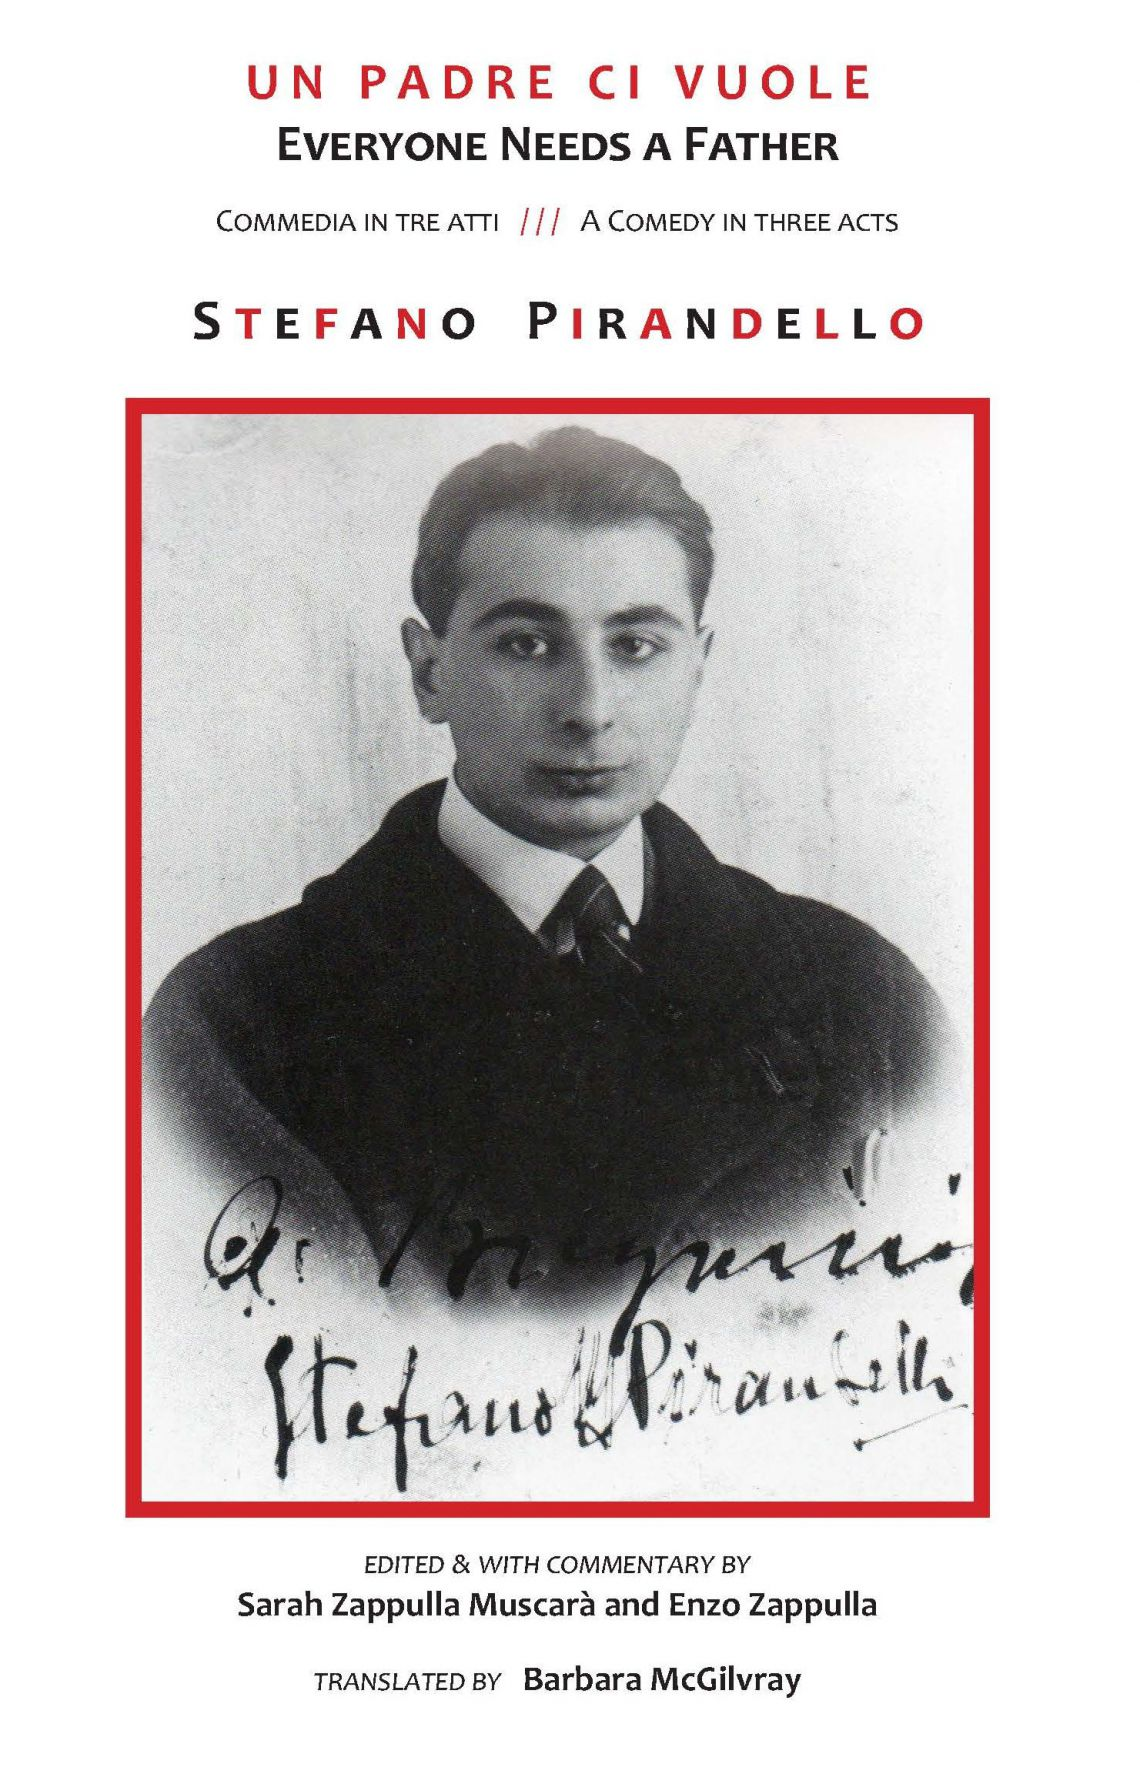 The cover of the English Translation of Everyone needs a father by Stefano Pirandello